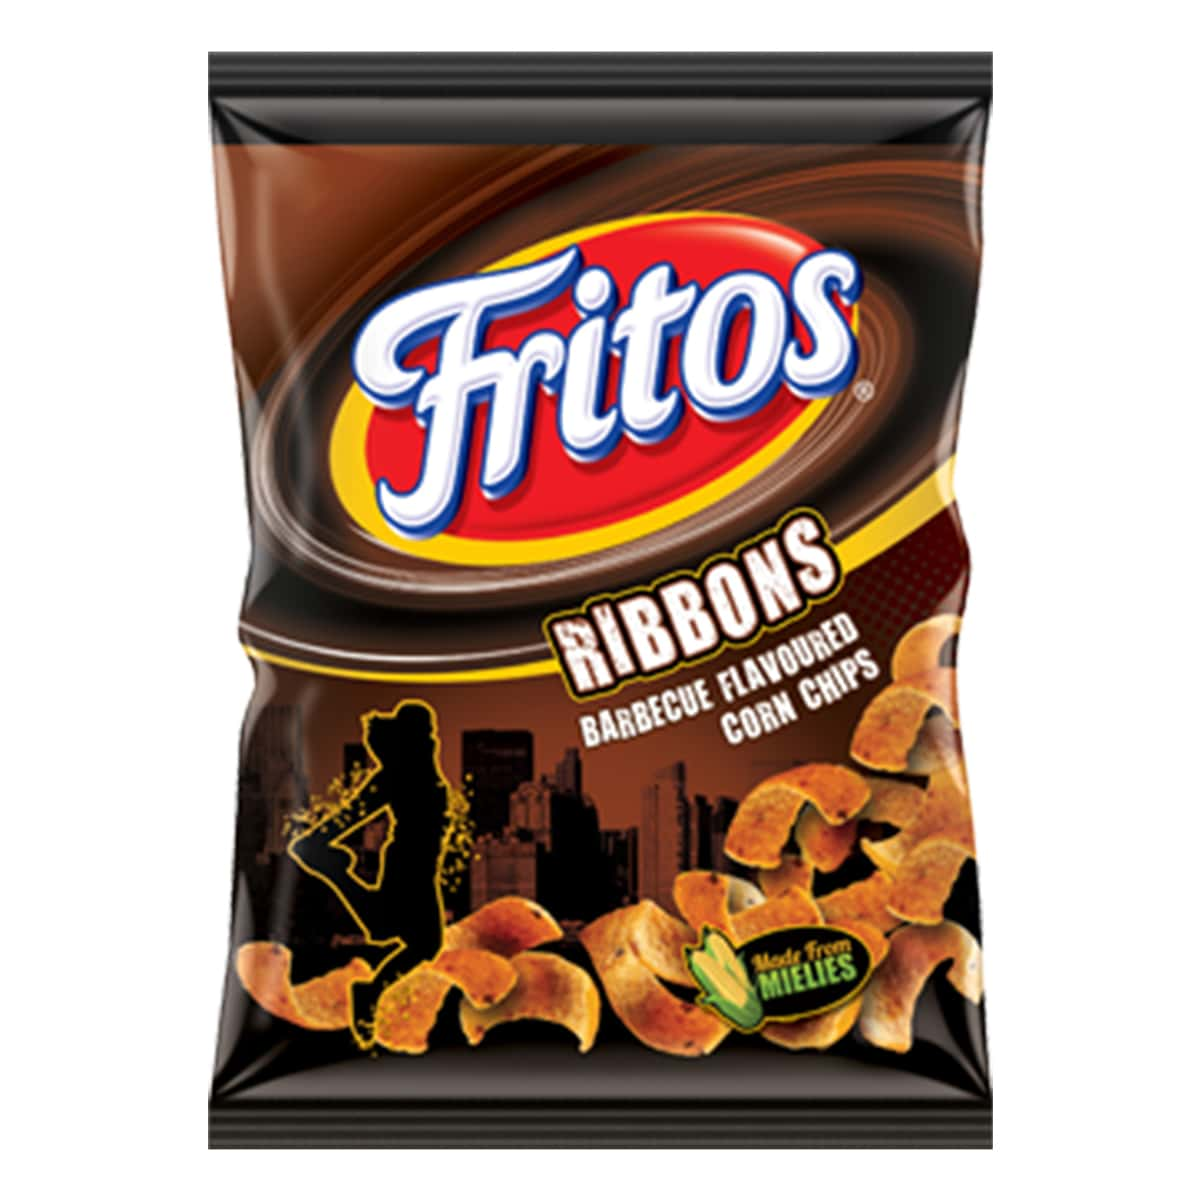 Buy Simba Fritos Ribbons Barbecue Flavoured Corn Chips - 120 gm